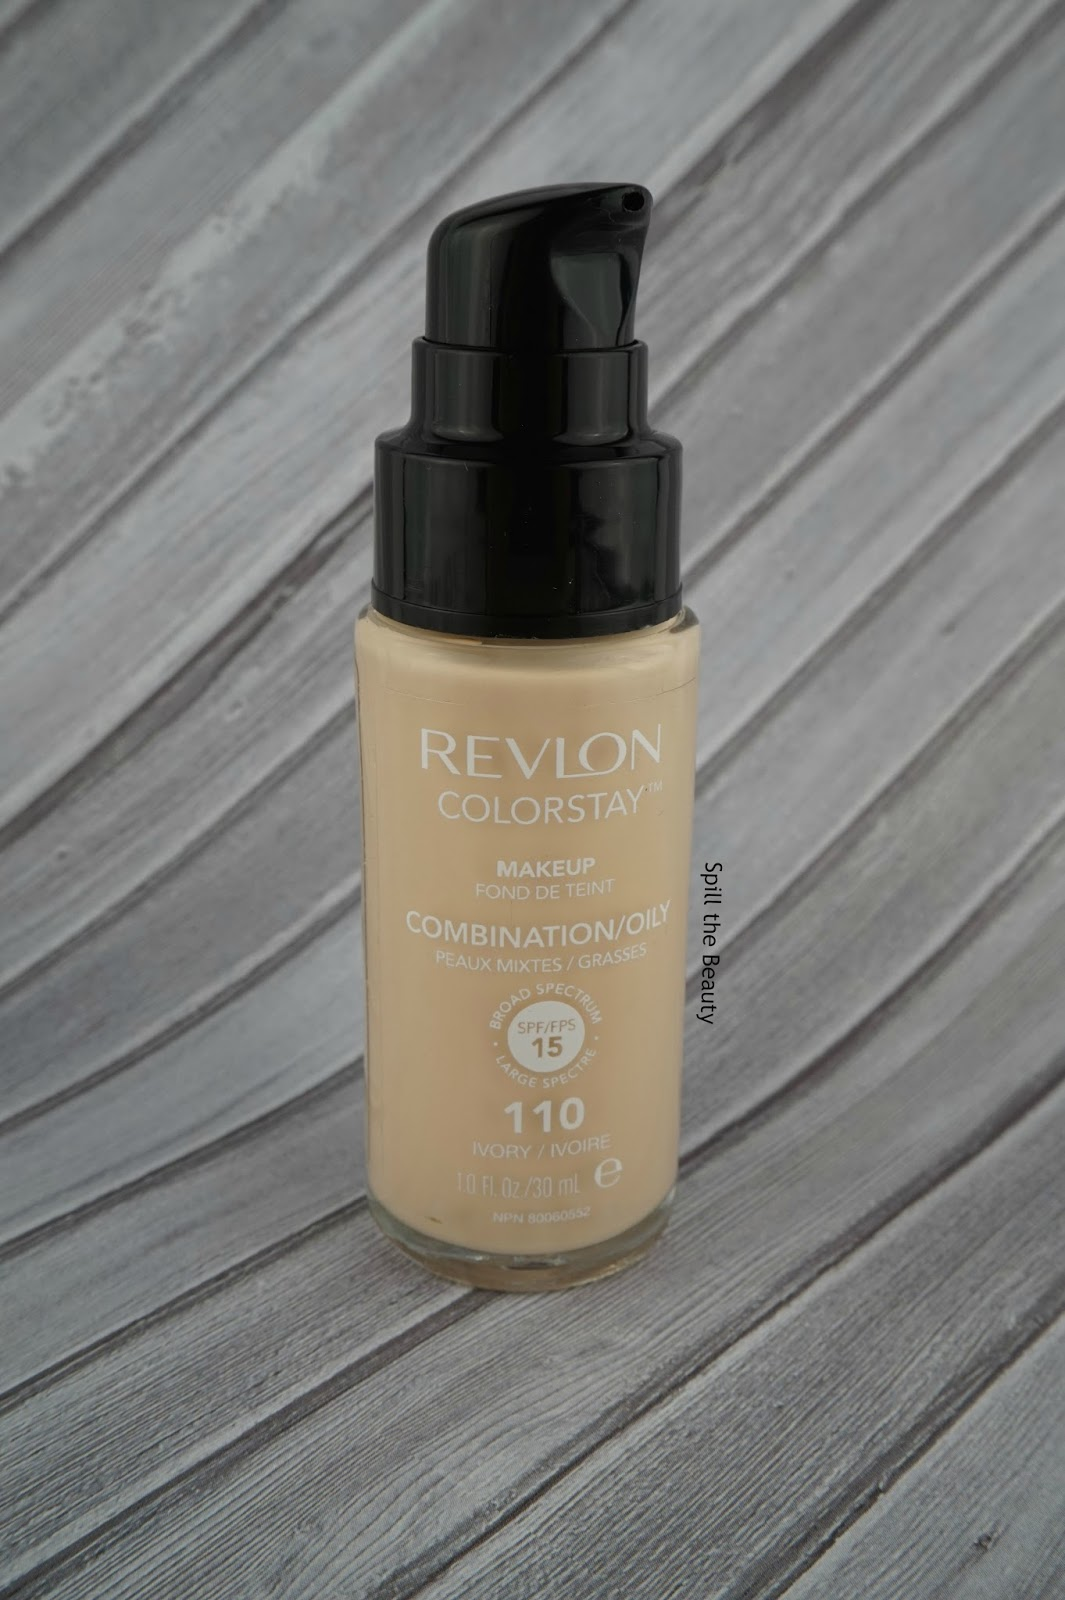 revlon colorstay combination oily foundation review swatches comparison 110 ivory before and after